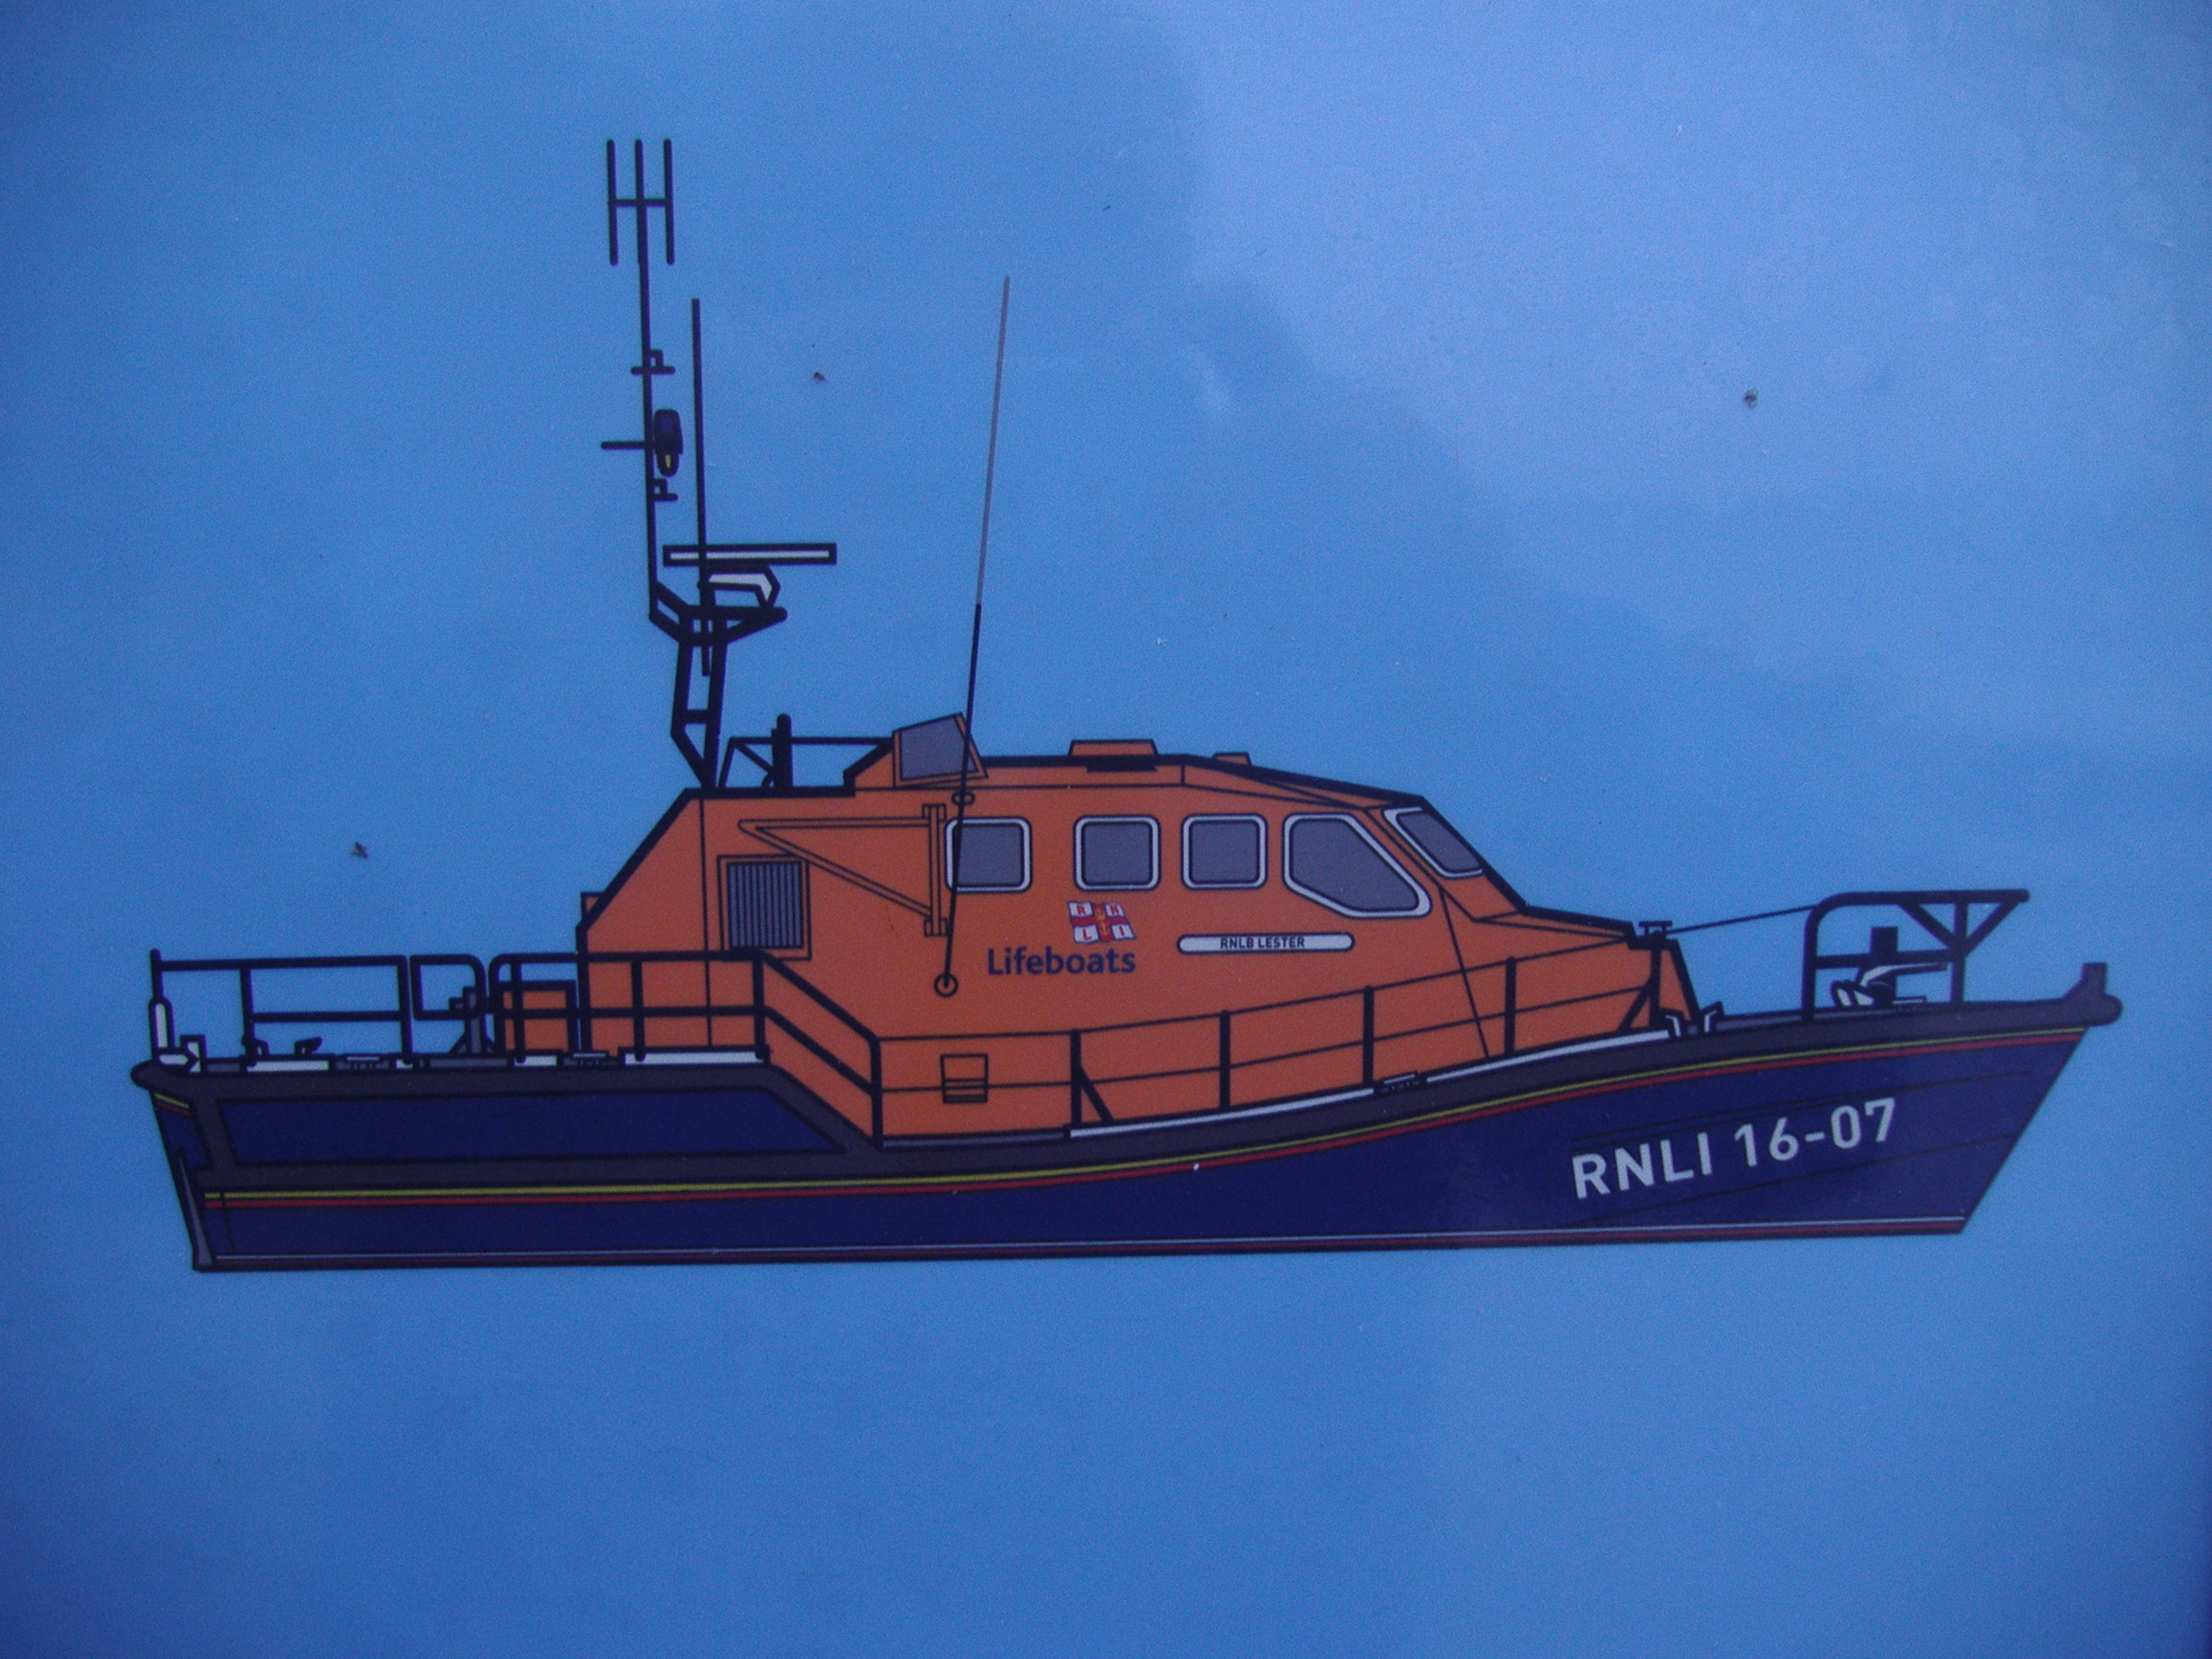 File:RNLI LESTER ON 1287.JPG